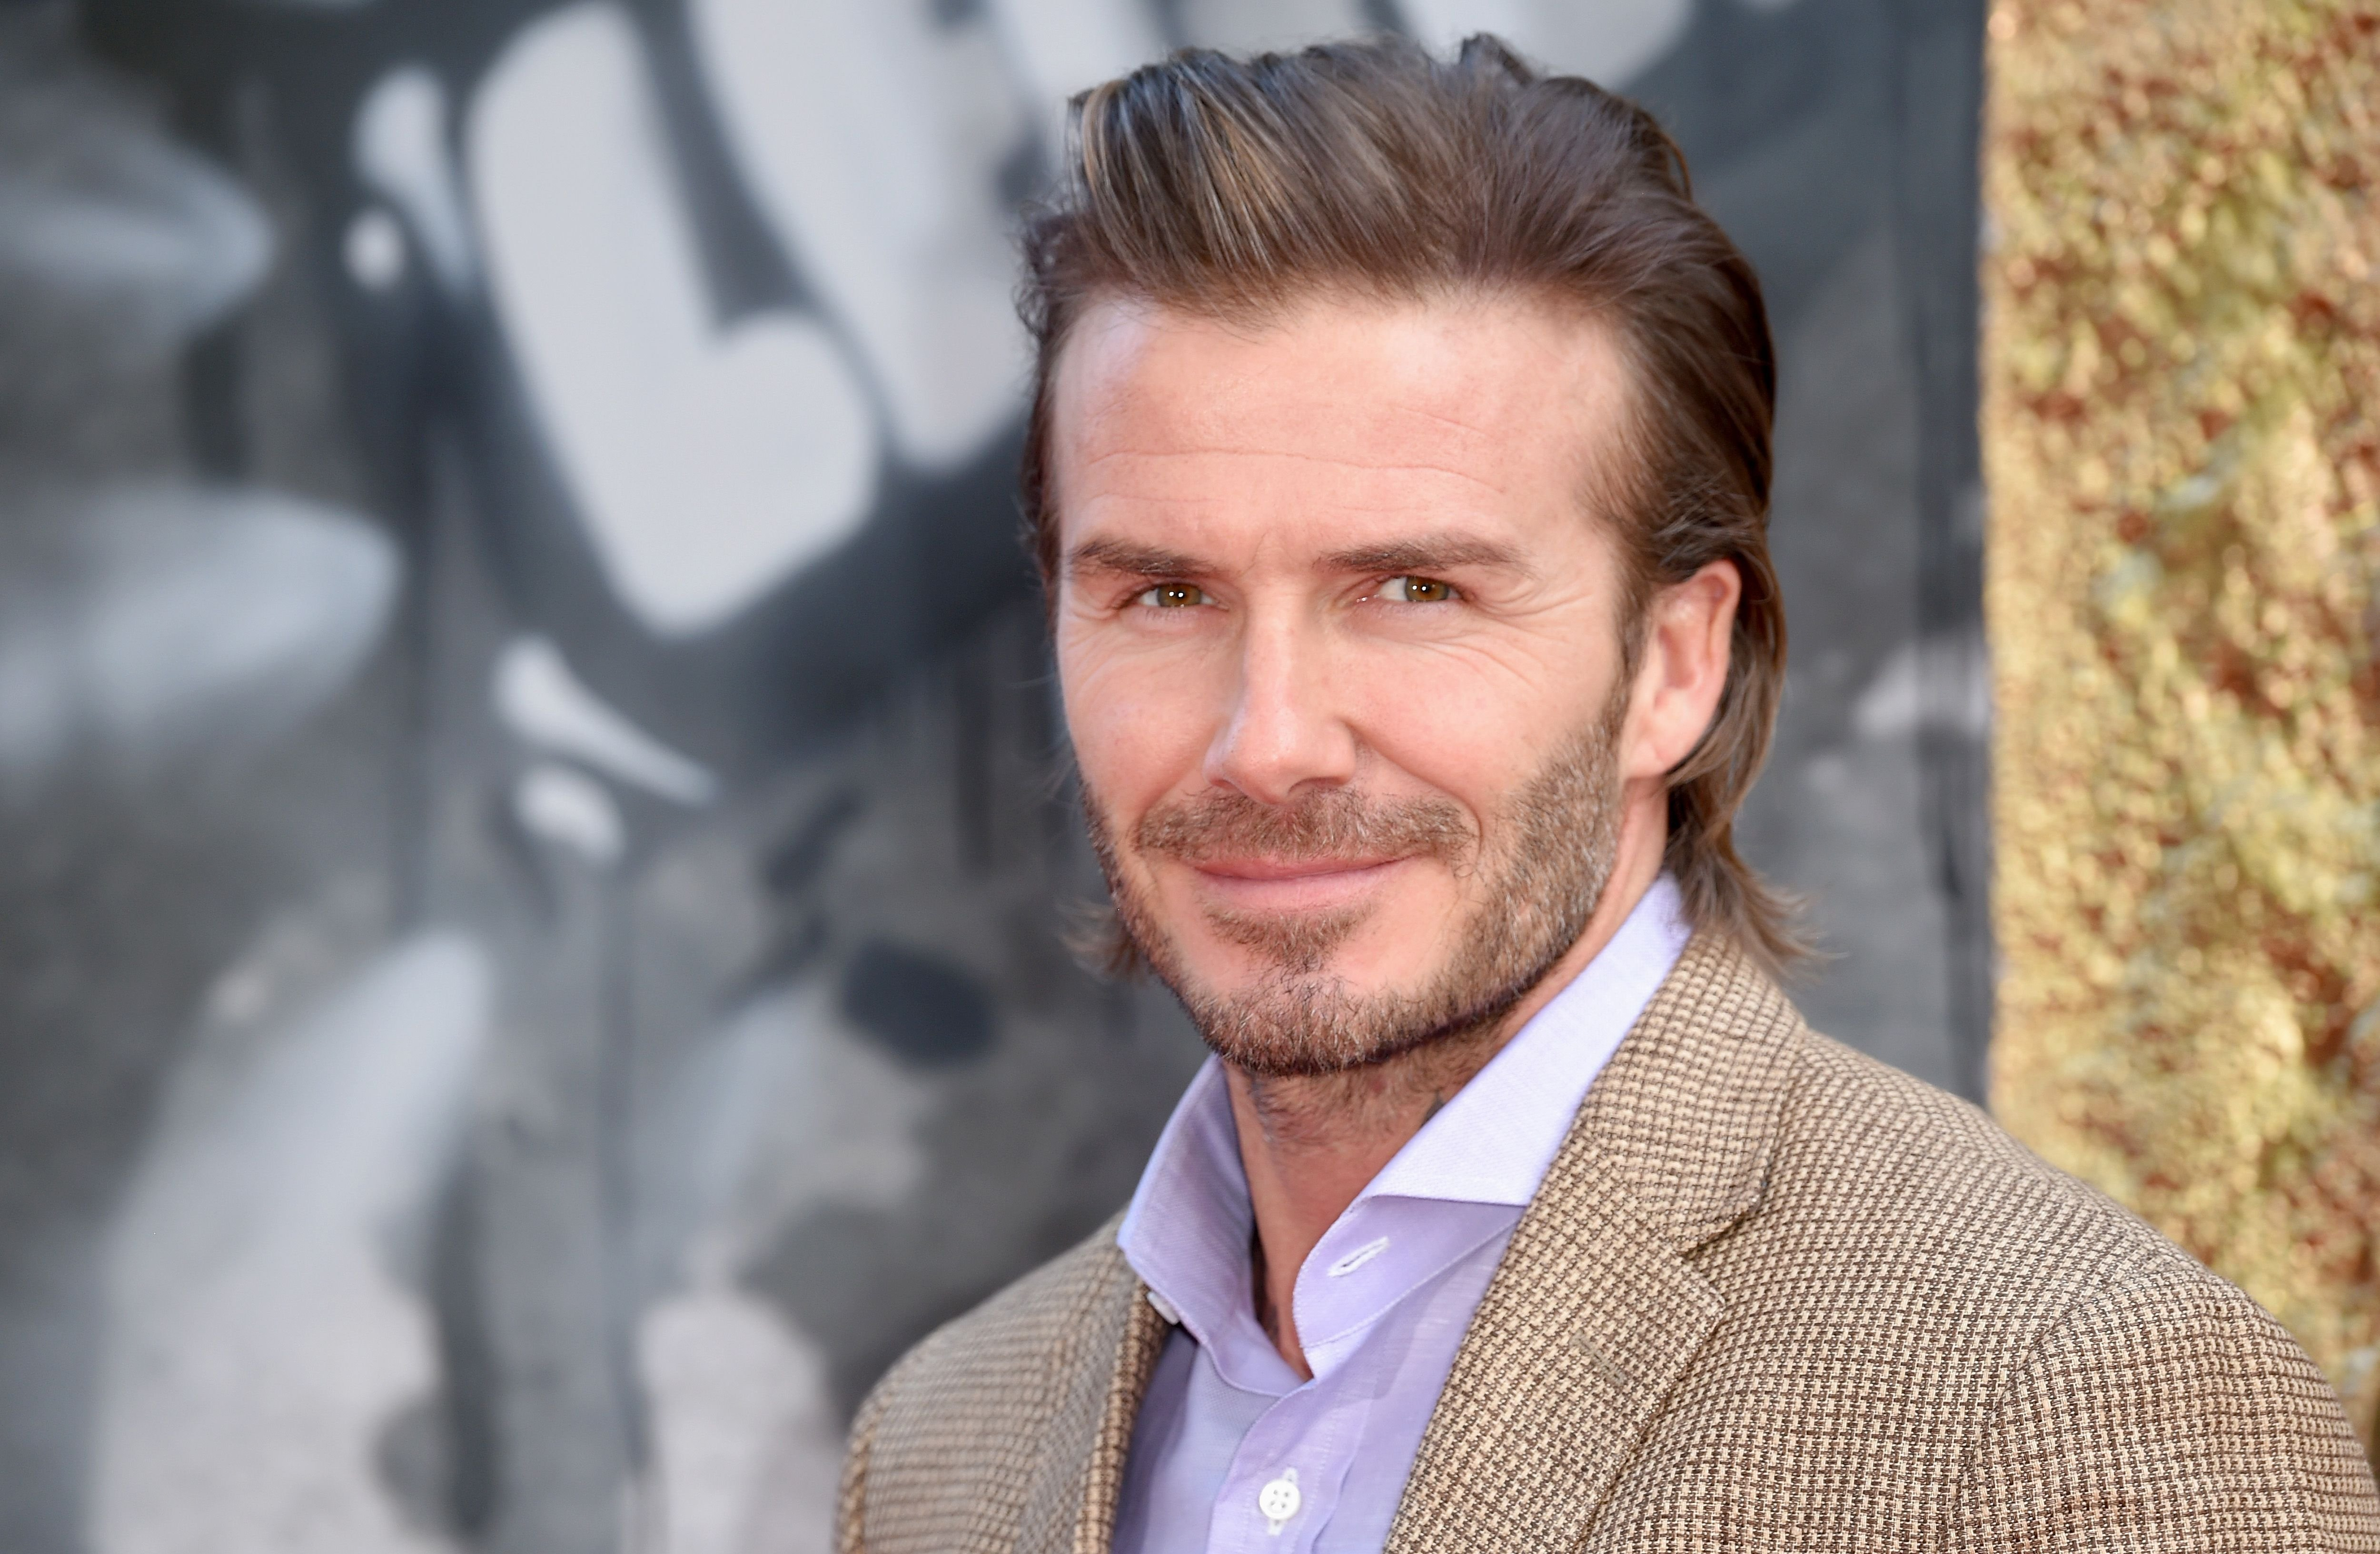 """David Beckham attends the """"King Arthur: Legend of the Sword"""" European premiere at Cineworld Empire on May 10, 2017 in London, United Kingdom. 